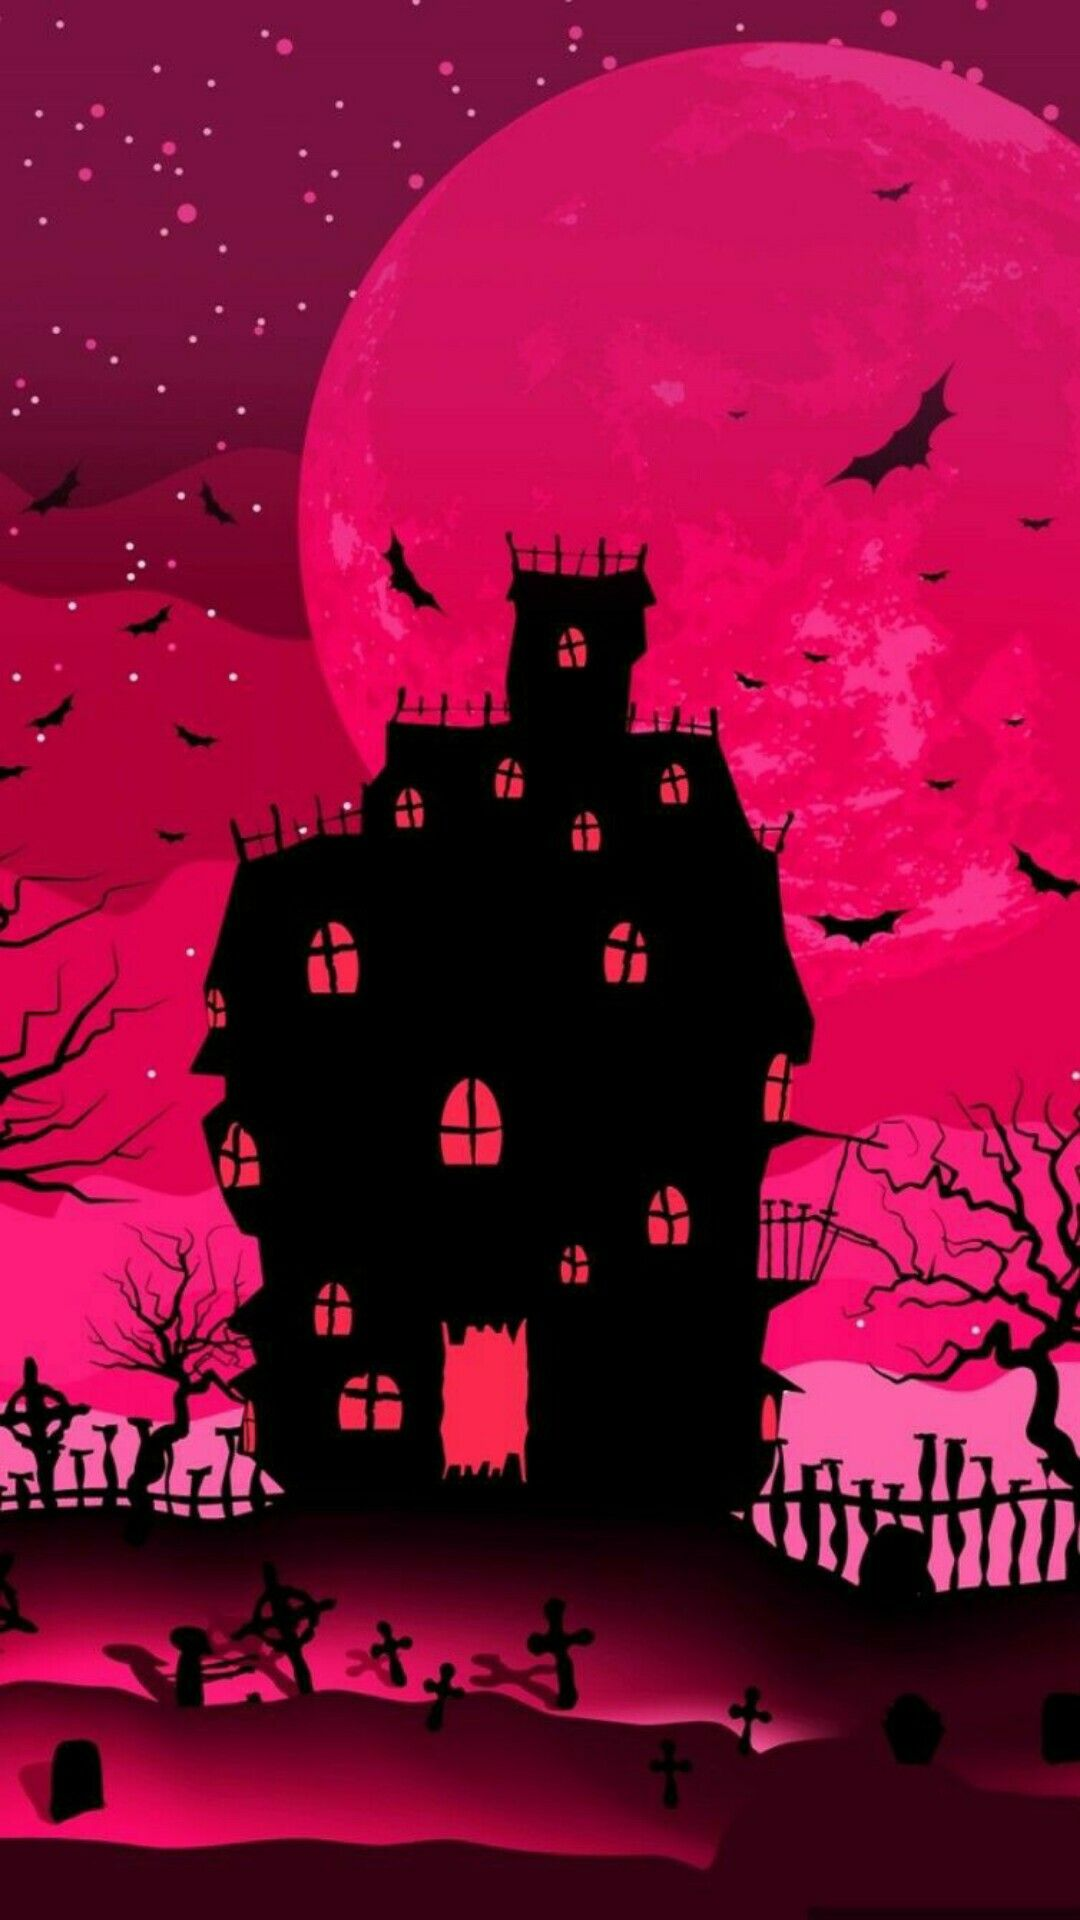 Pin By Hendie Purwiliarto On Phone Backgrounds 35 Halloween Wallpaper Iphone Halloween Wallpaper Halloween Painting